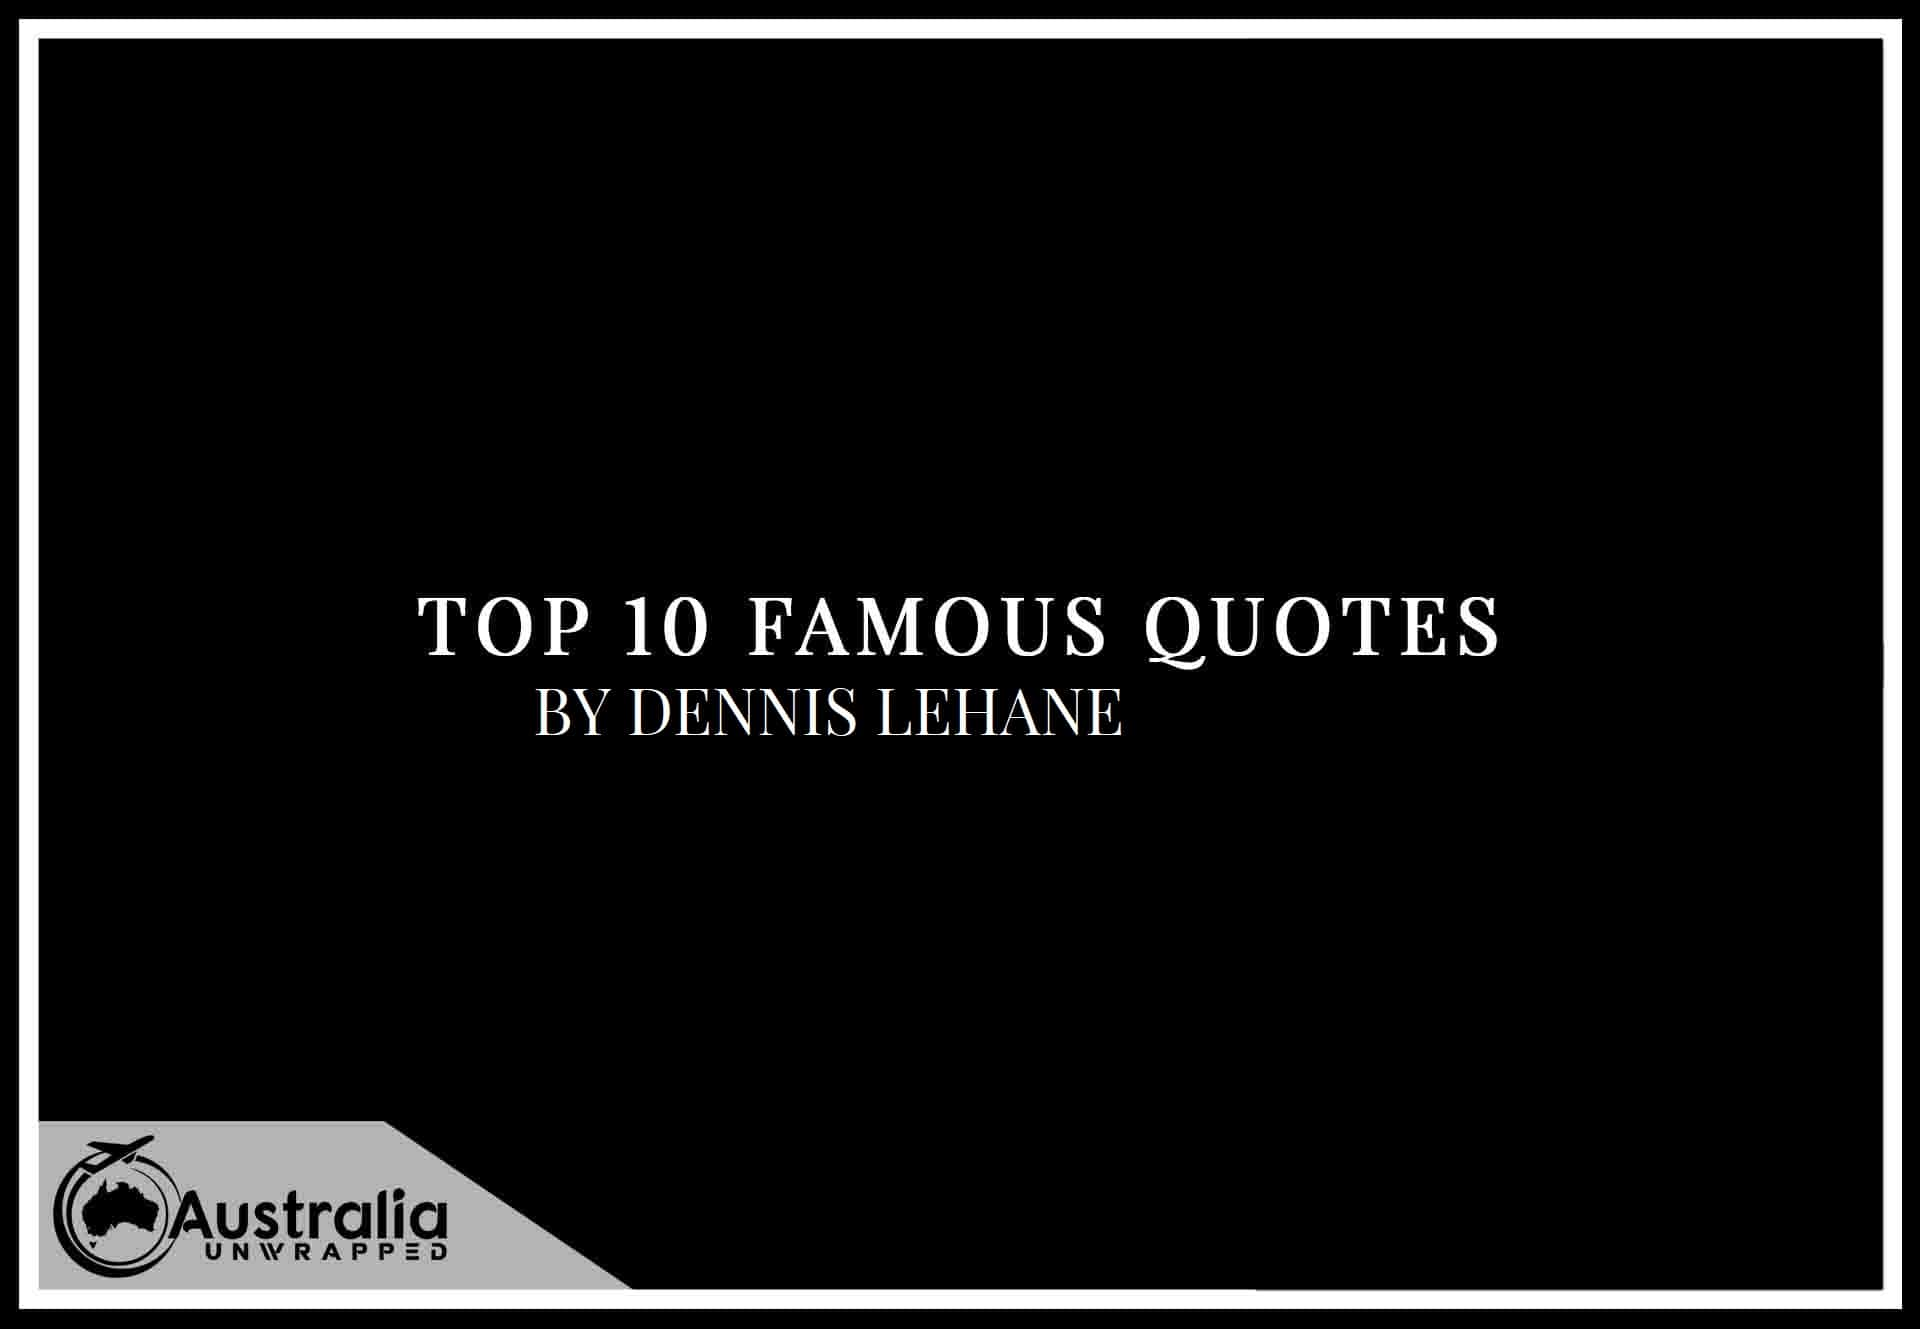 Top 10 Famous Quotes by Author Dennis Lehane